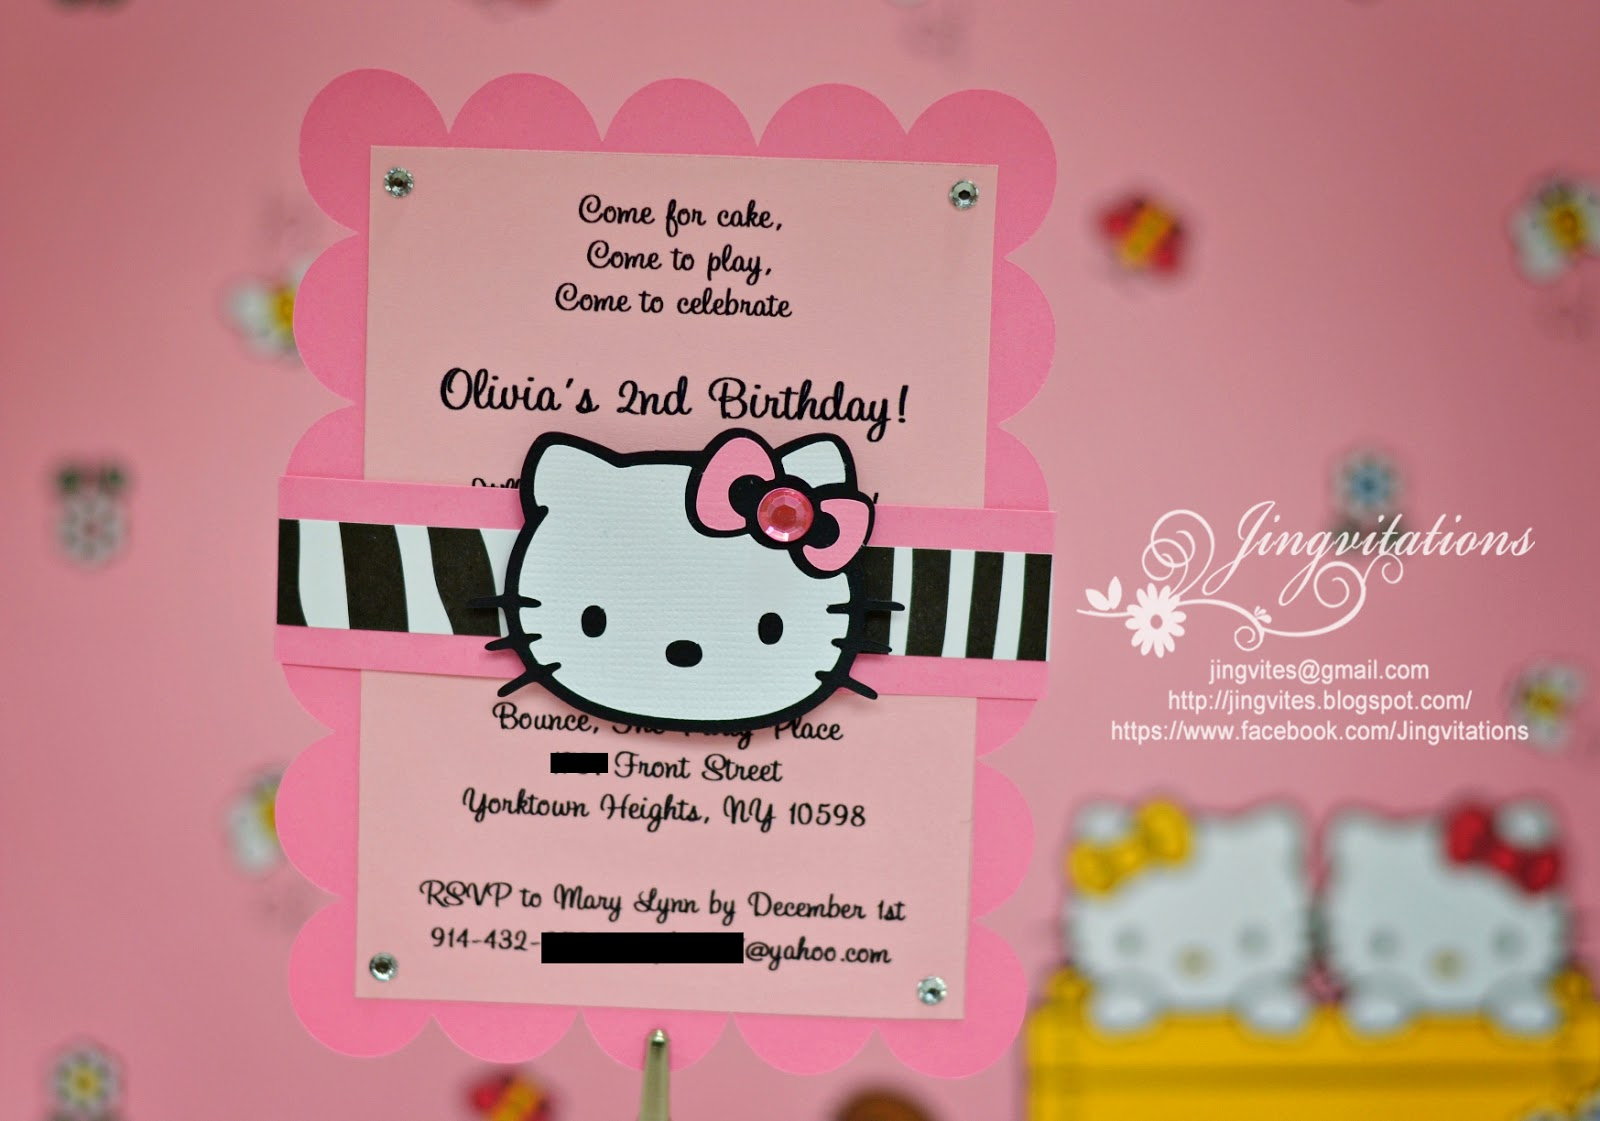 jingvitations hello kitty birthday party invitations hello kitty birthday party invitations in cricut middot hello kitty zebra leopard